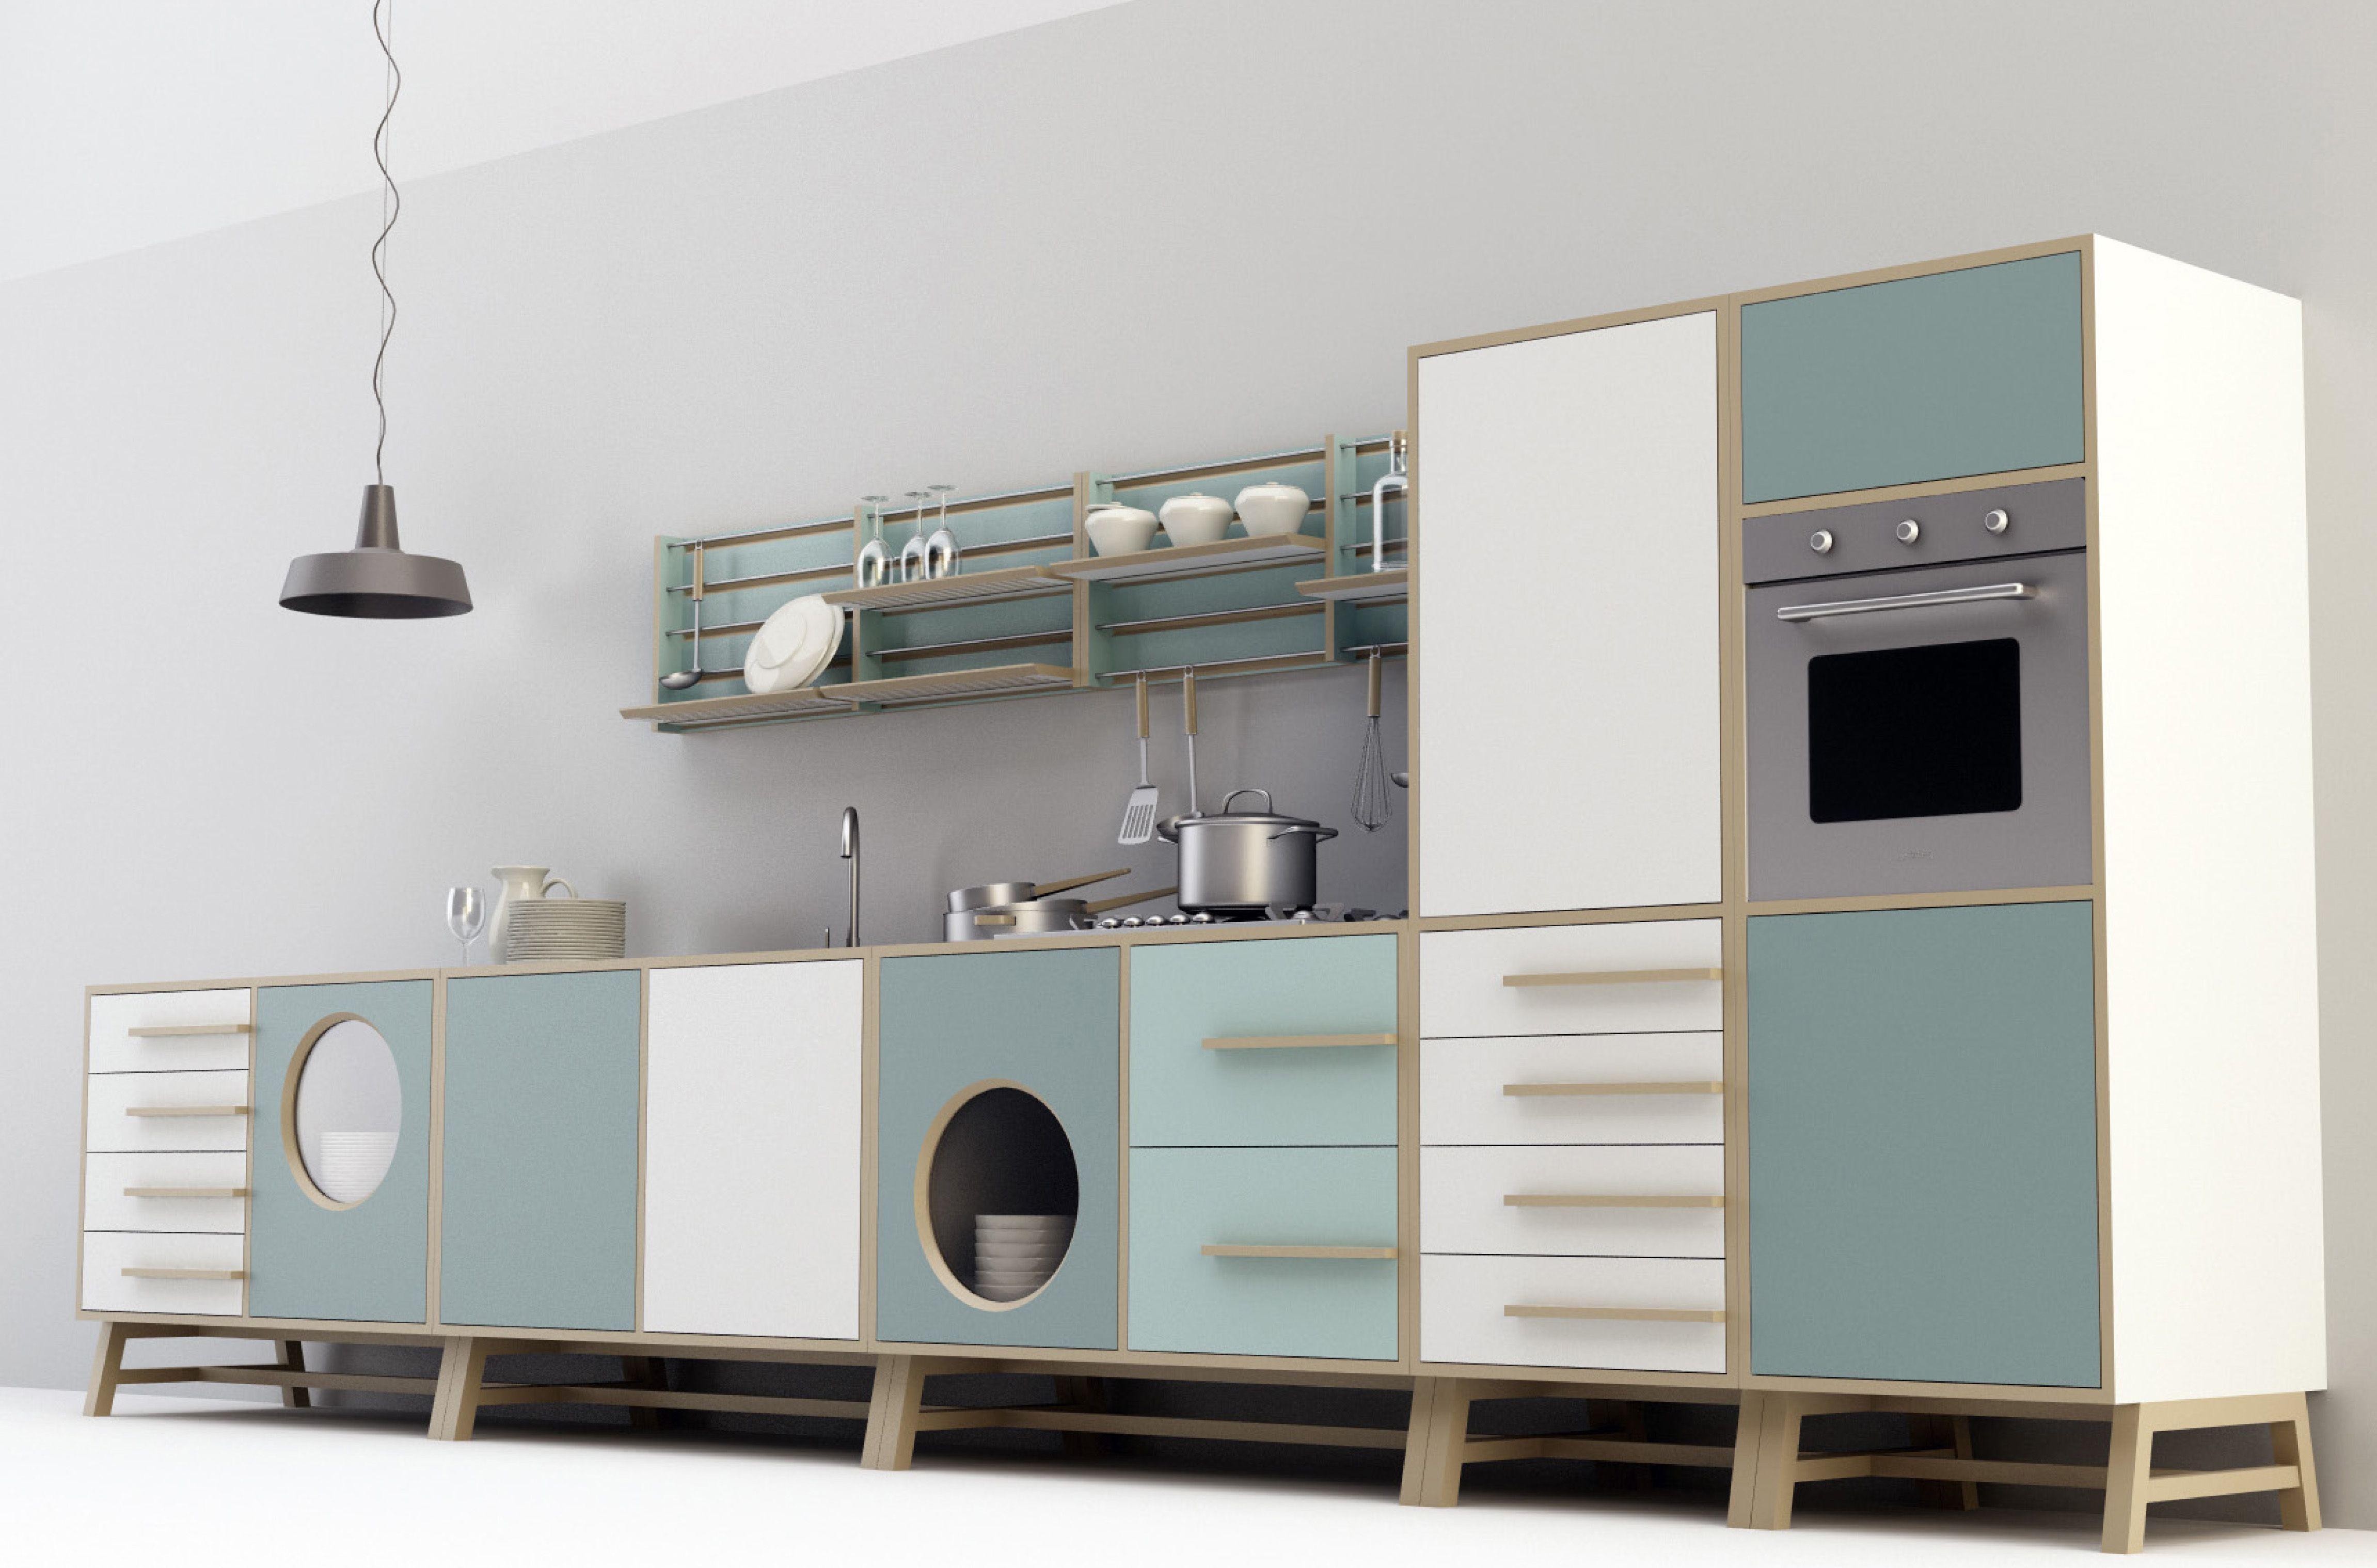 Cucina free standing_ happy Kitchen by Joe Velluto for DESIGNMOOD ...